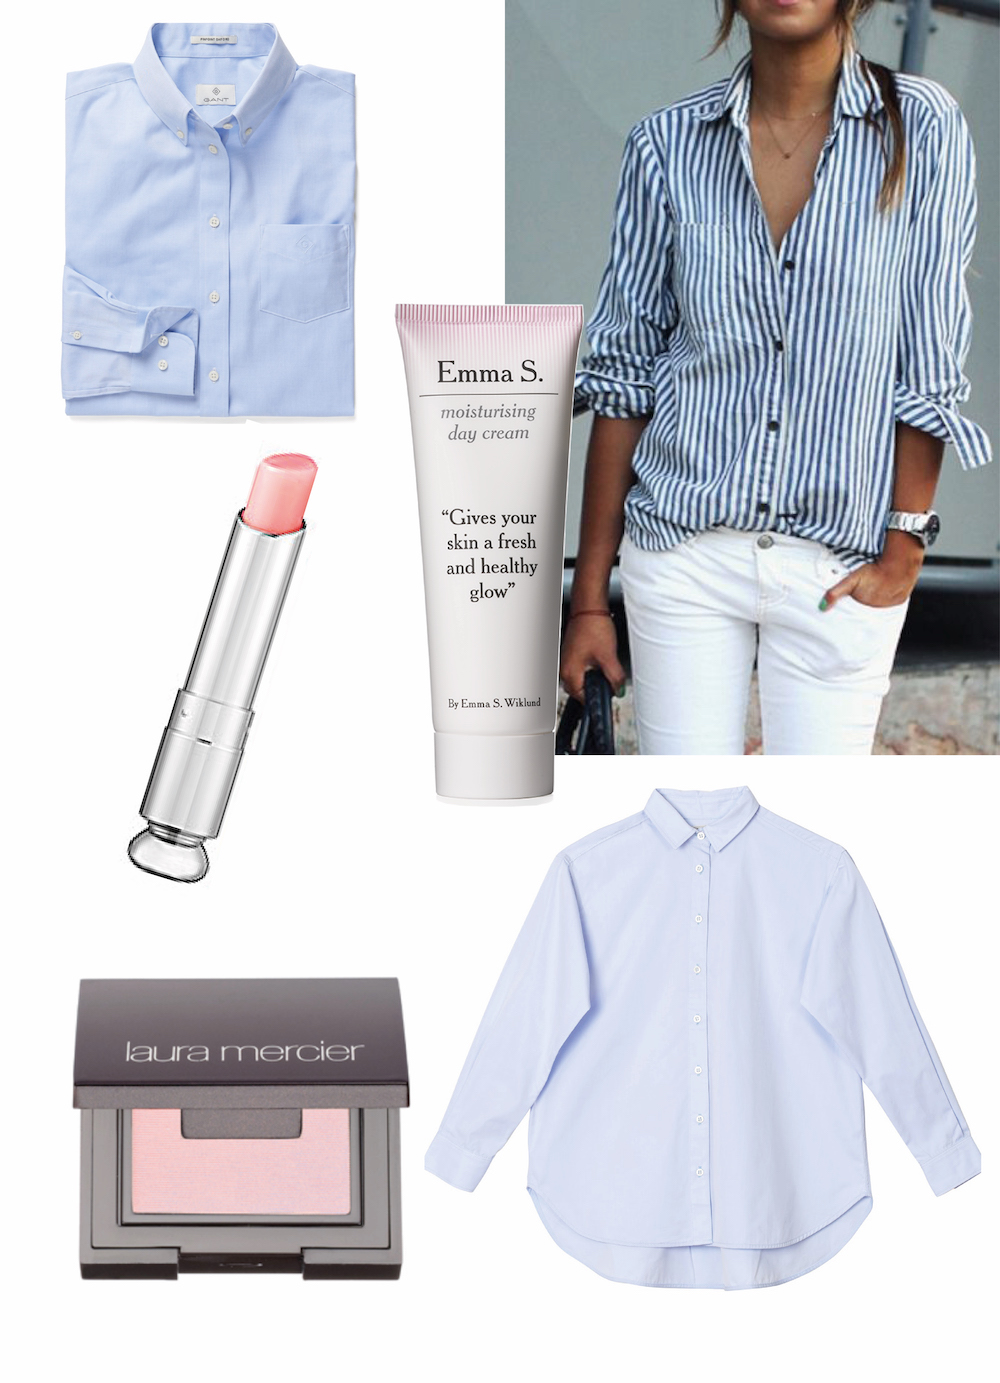 EmmaS-blue-shirt-pink-makeup